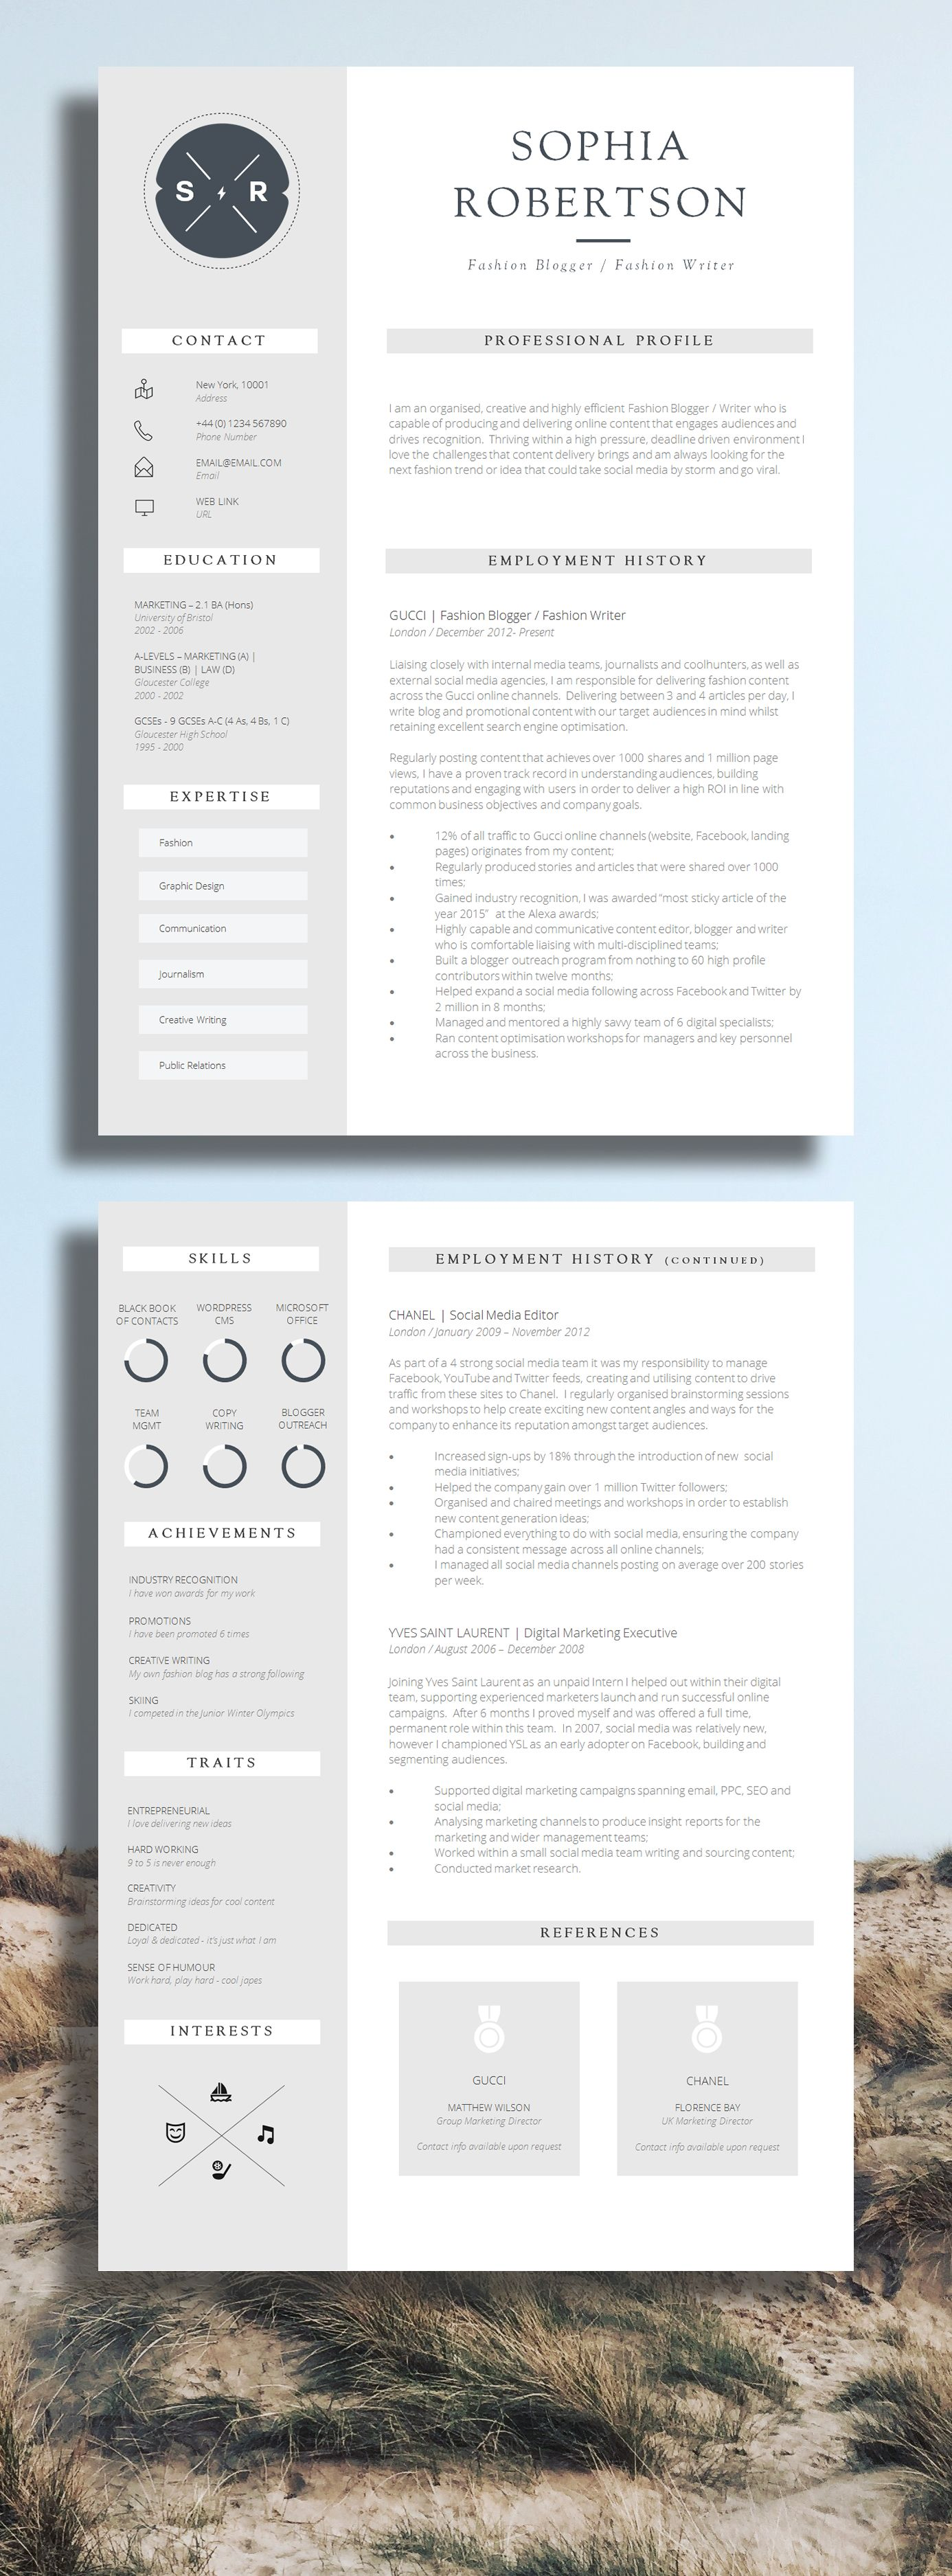 creative resume template teacher resume creative cv design get more interviews take your job application to the next level cv templates